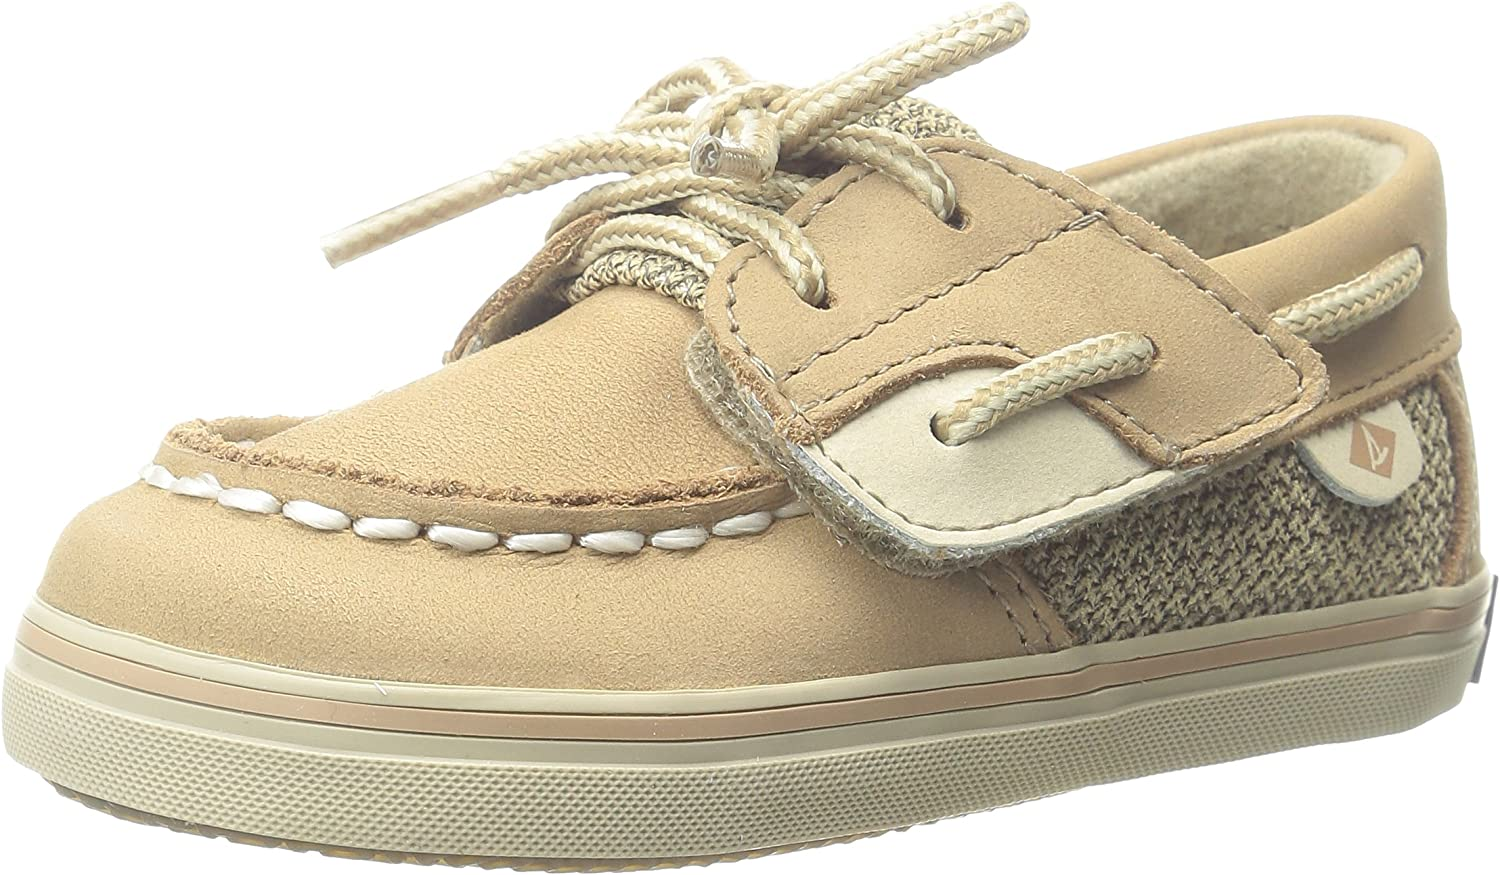 Sperry Bluefish Crib A Popular standard C Boat Shoe Toddler Little Chicago Mall Infant Kid